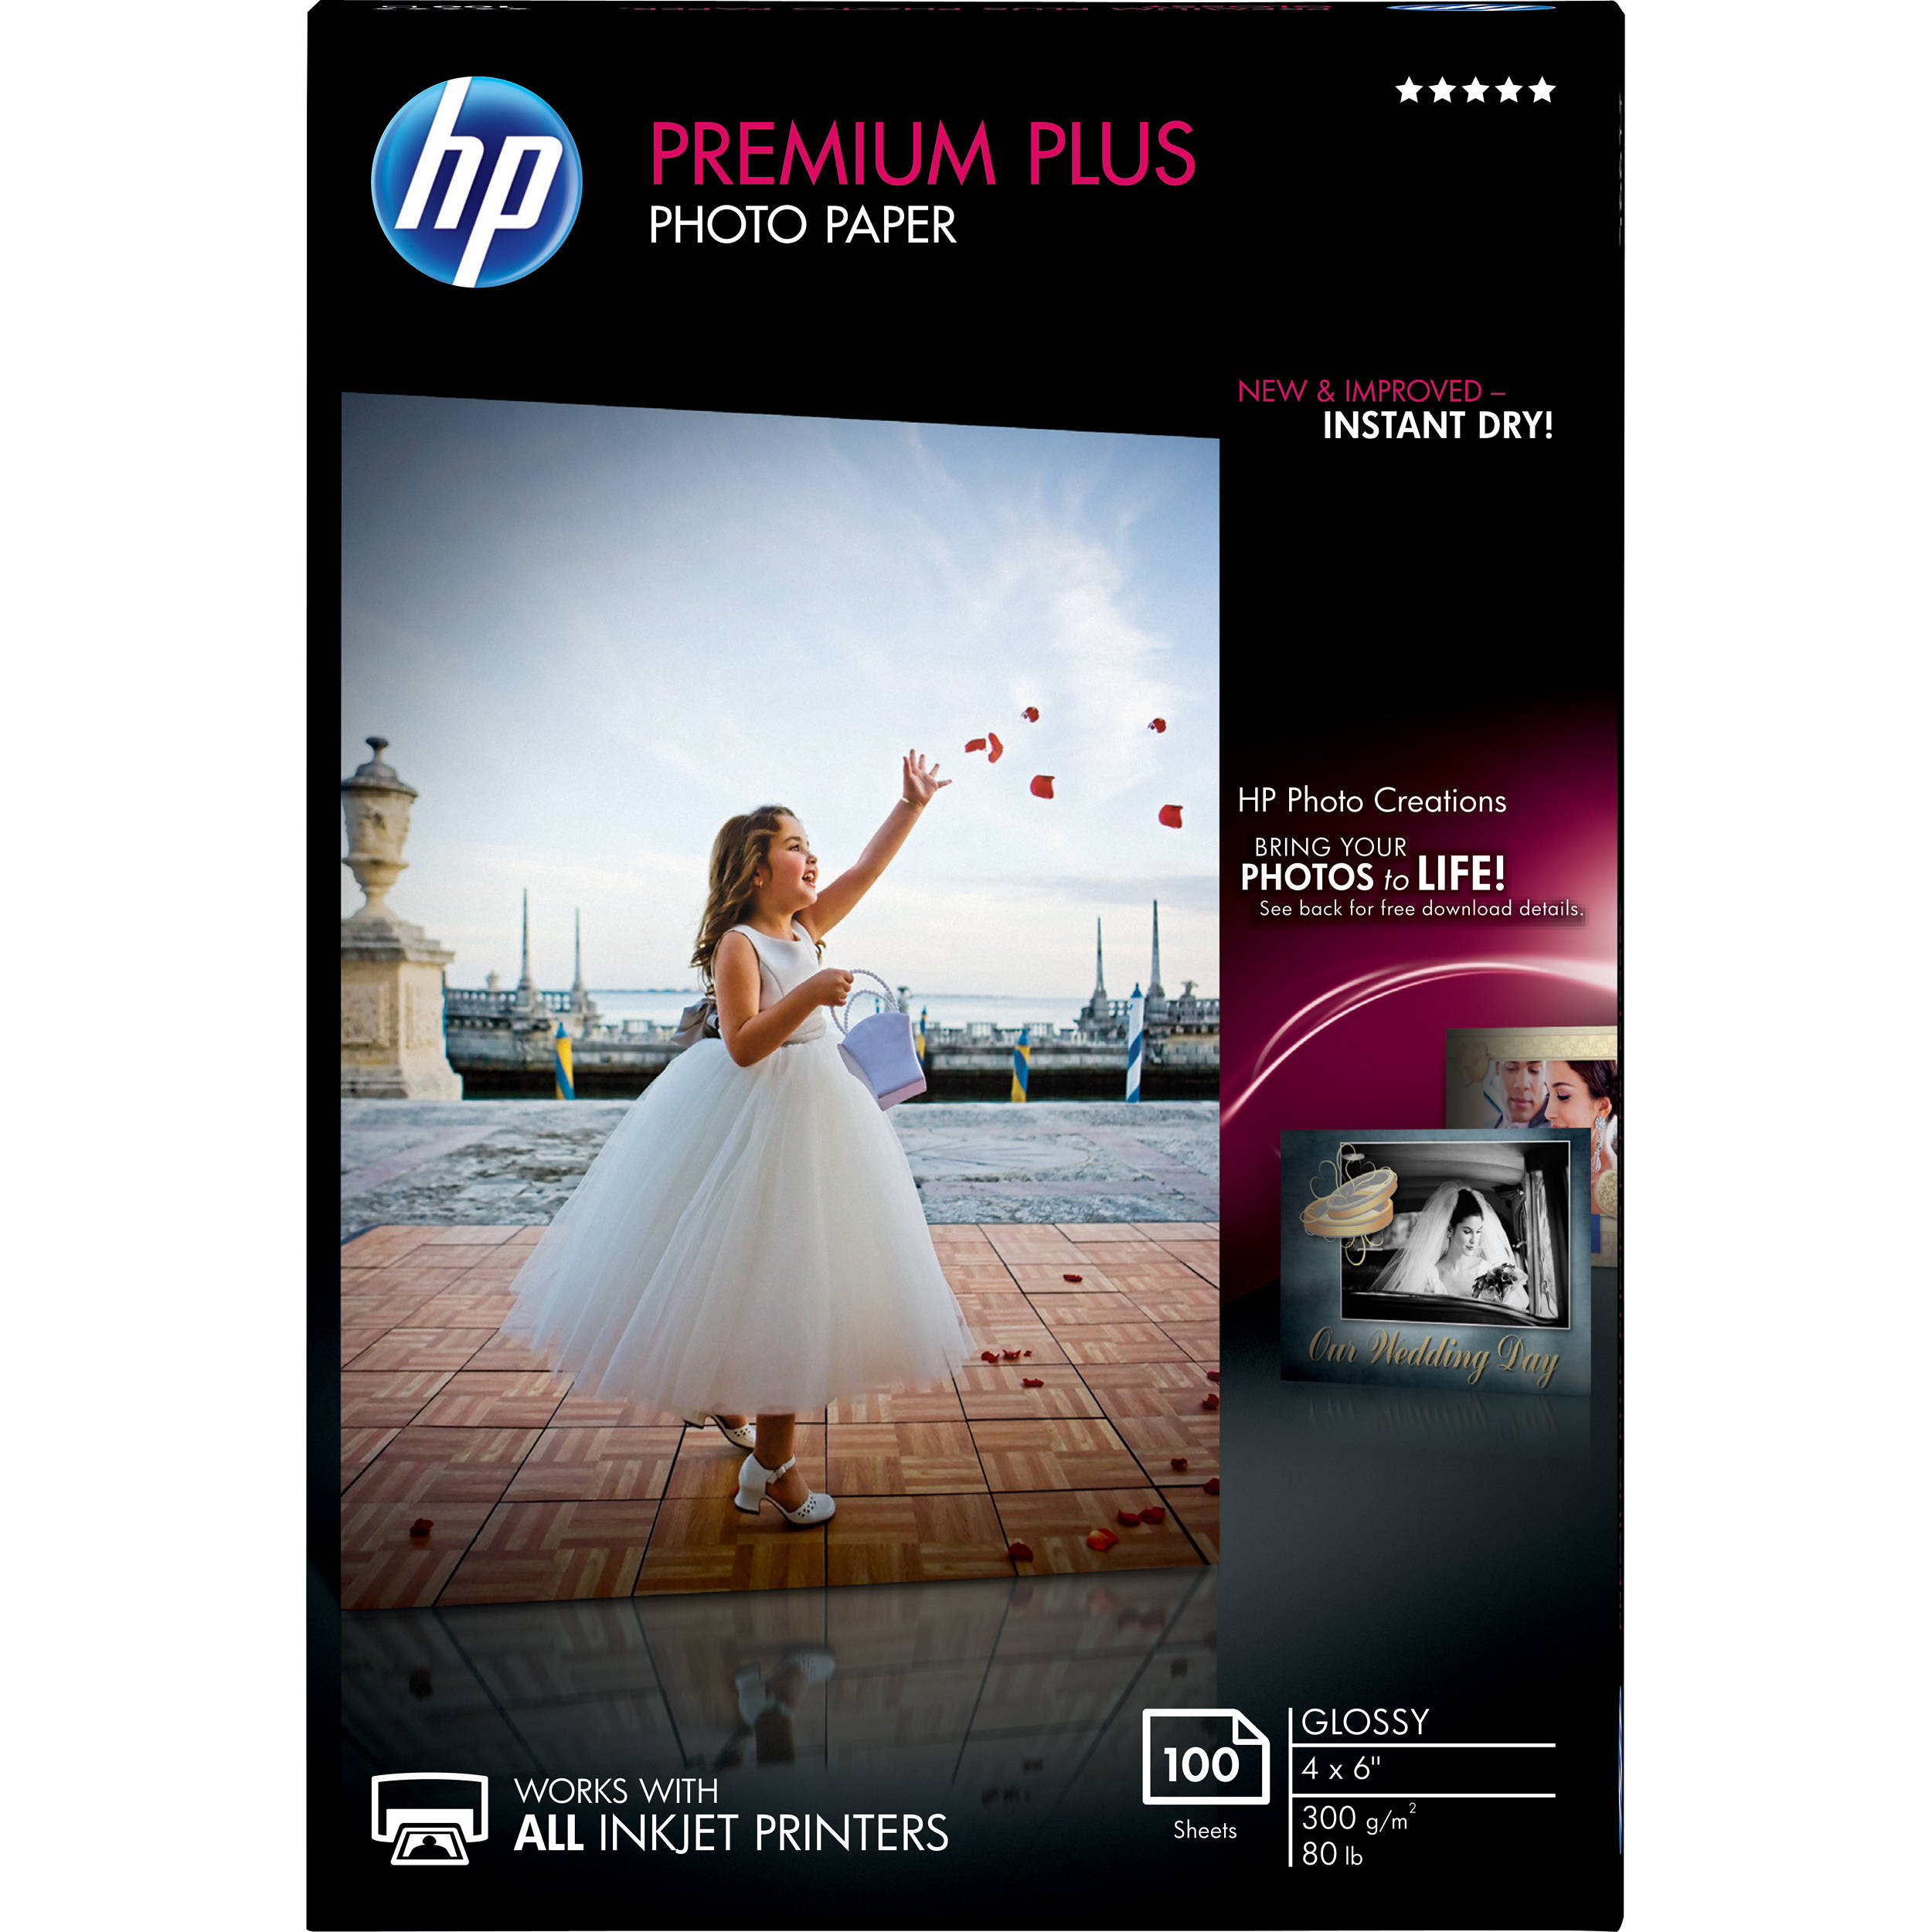 HP Premium Plus Photo Paper, Glossy (100 Sheets, 4 x 6